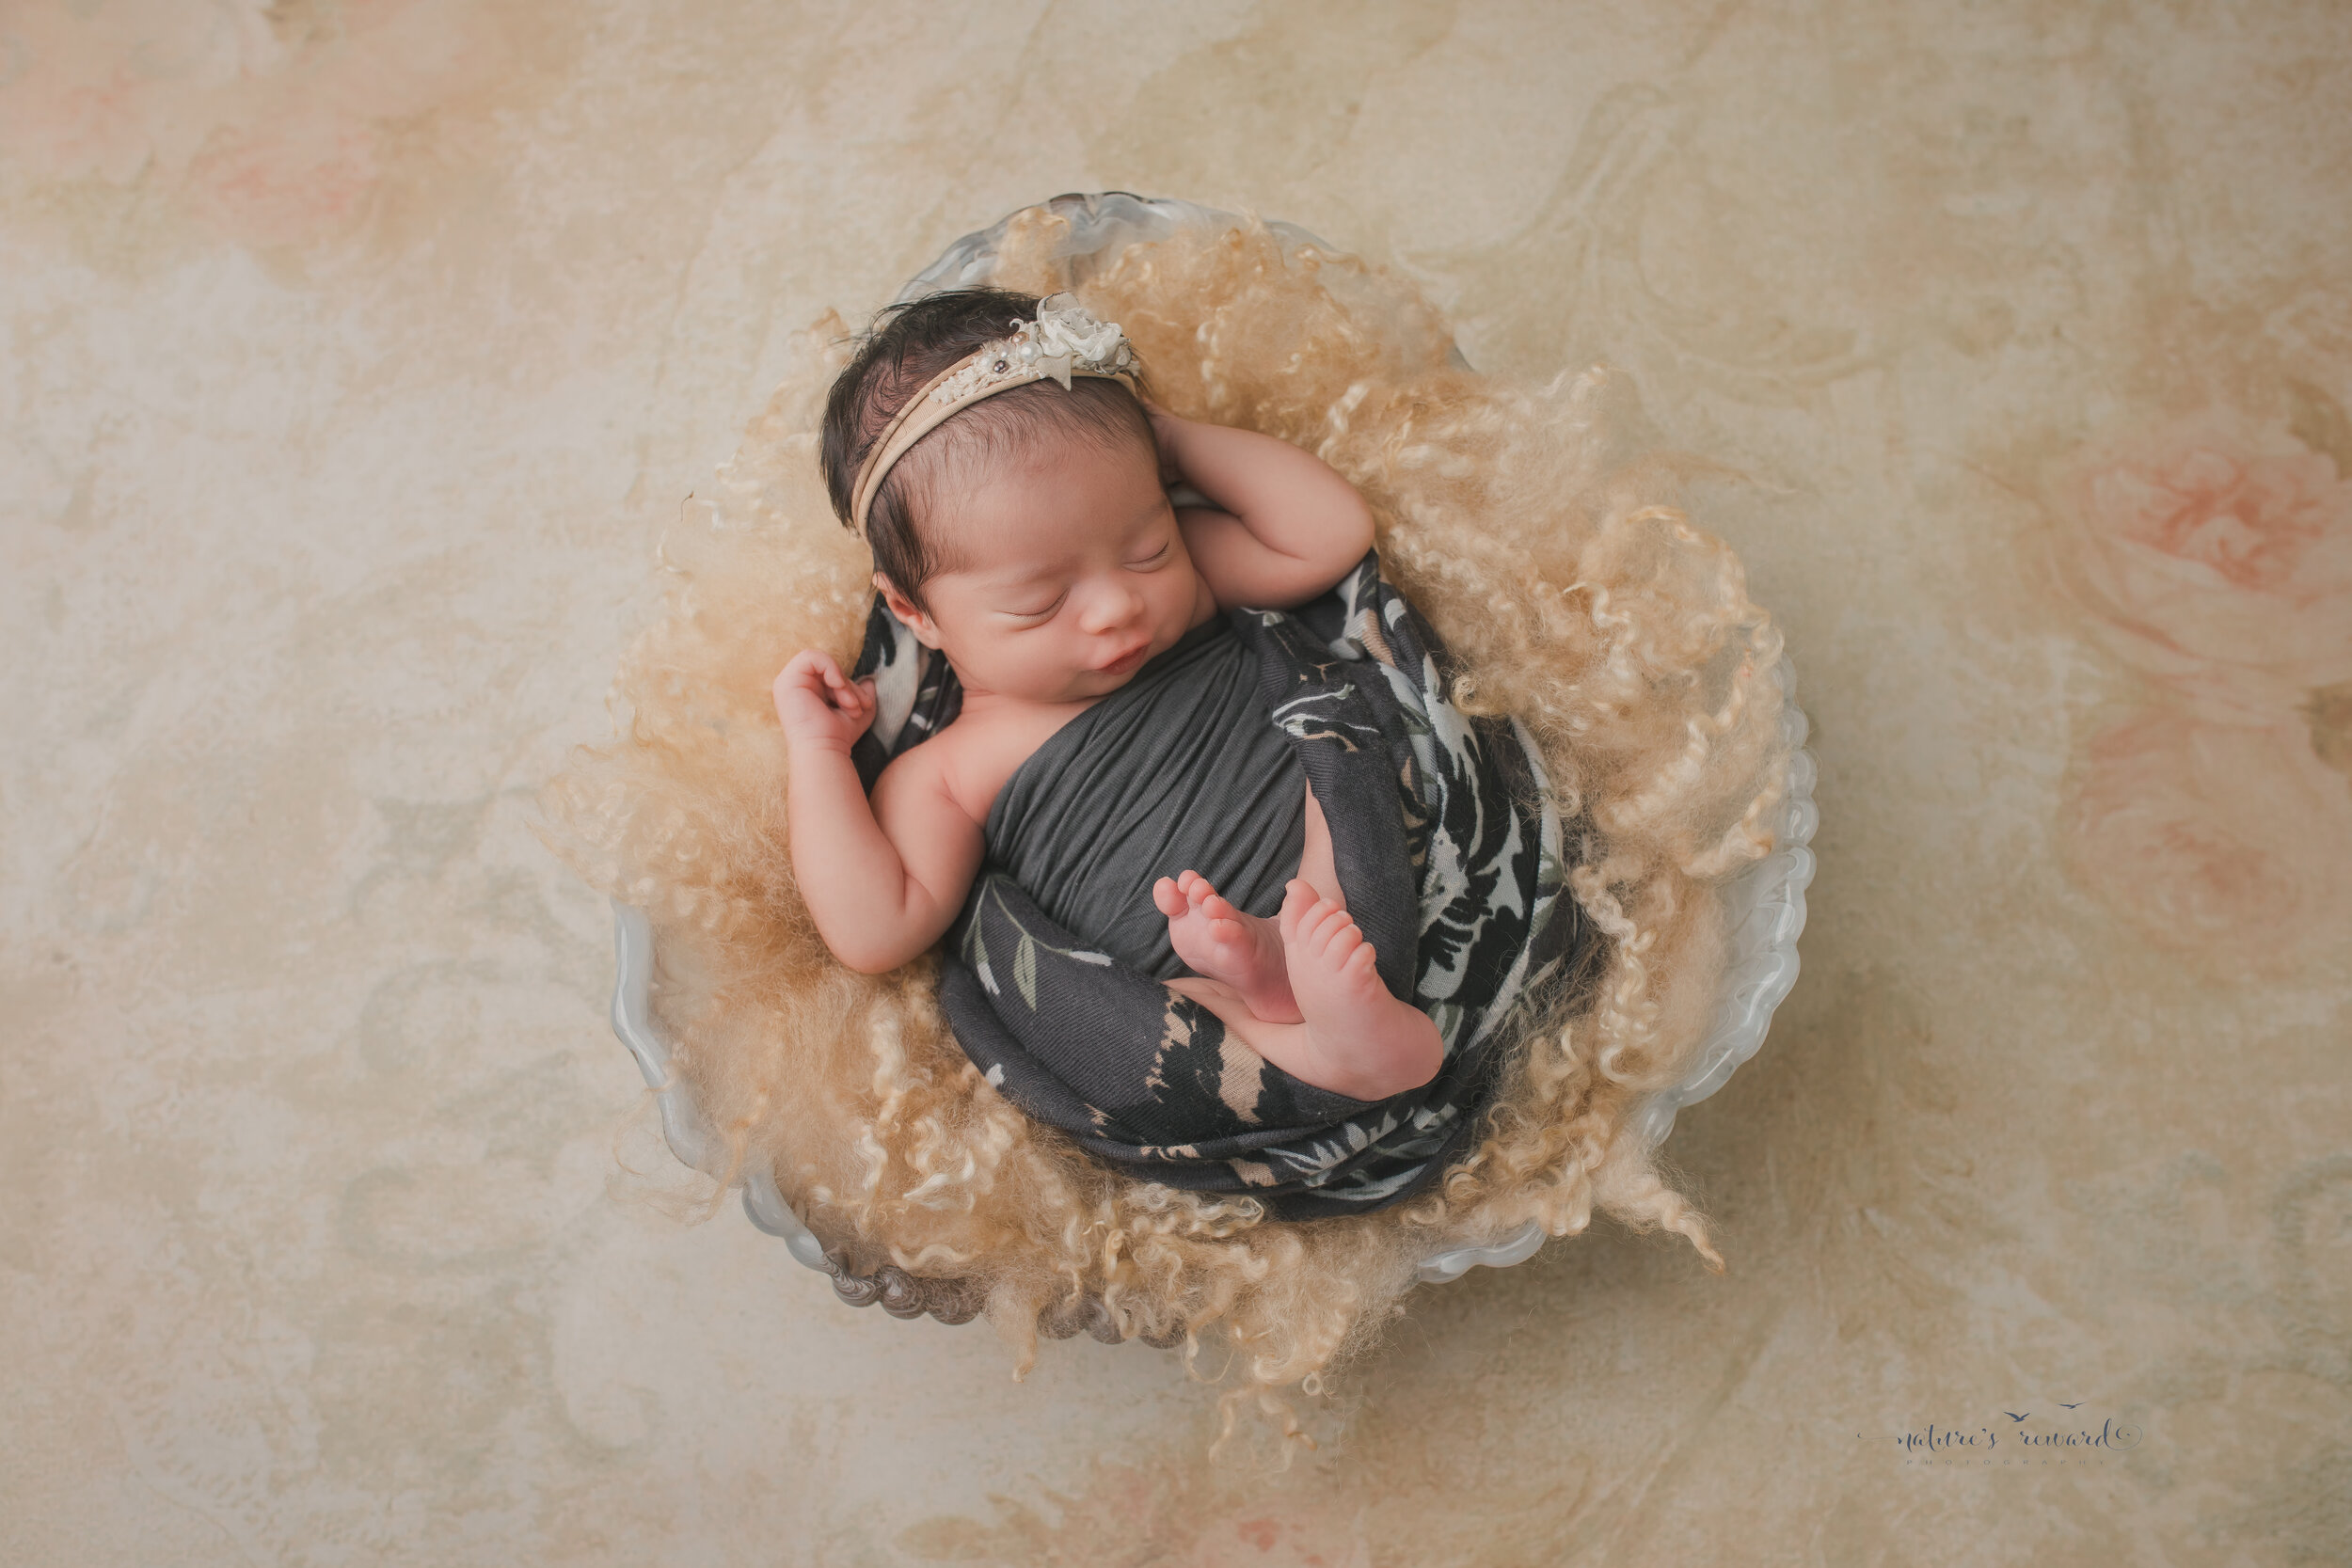 Newborn Baby girl stretching while swaddled in grey in an ivory bowl on a floral backdrop,a newborn portrait by Nature's Reward Photography